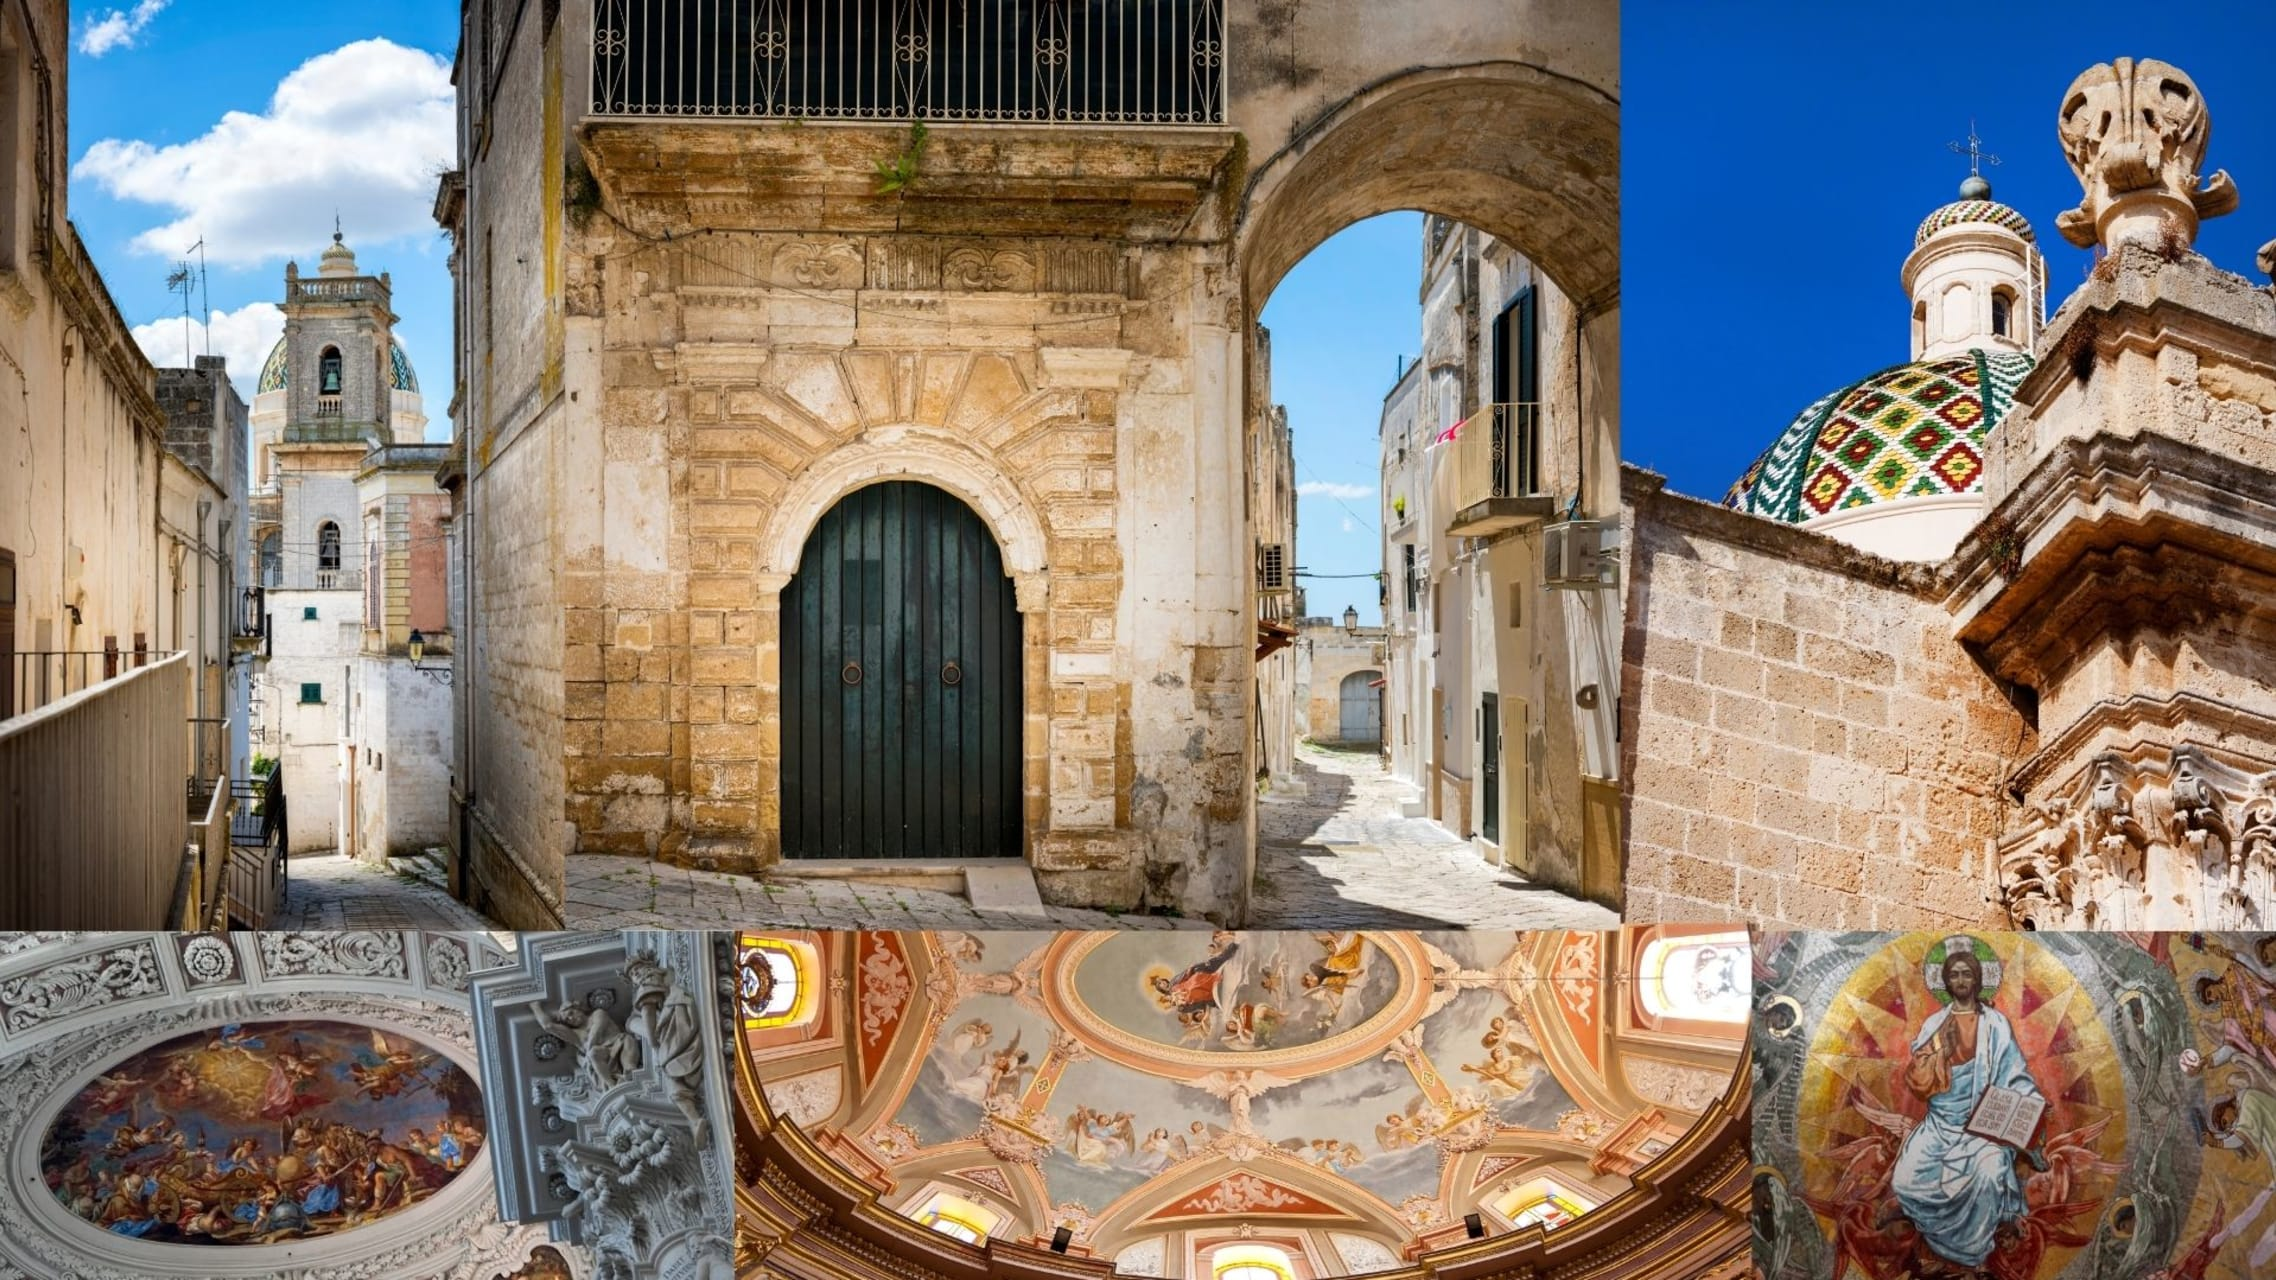 Puglia - Oria a Charming Small Medieval Town in the South of Puglia